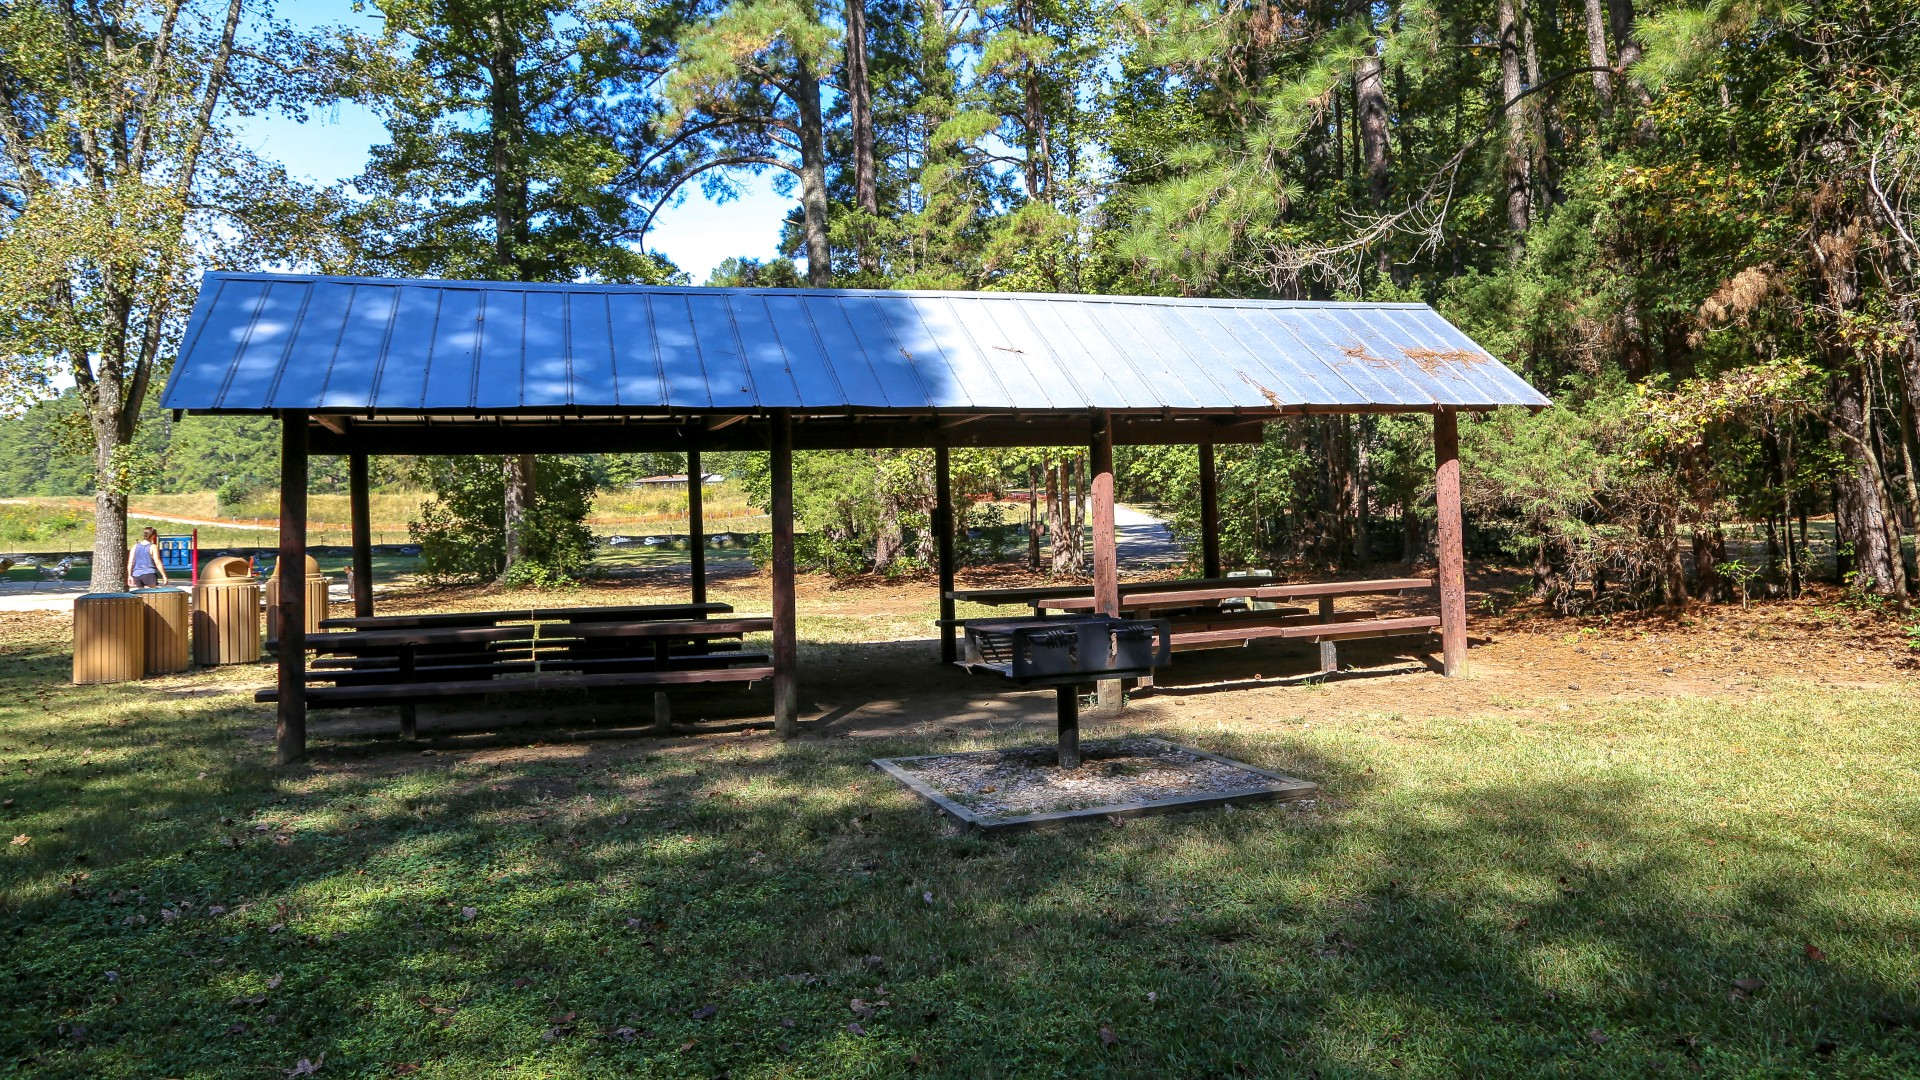 A second slightly smaller outdoor picnic shelter